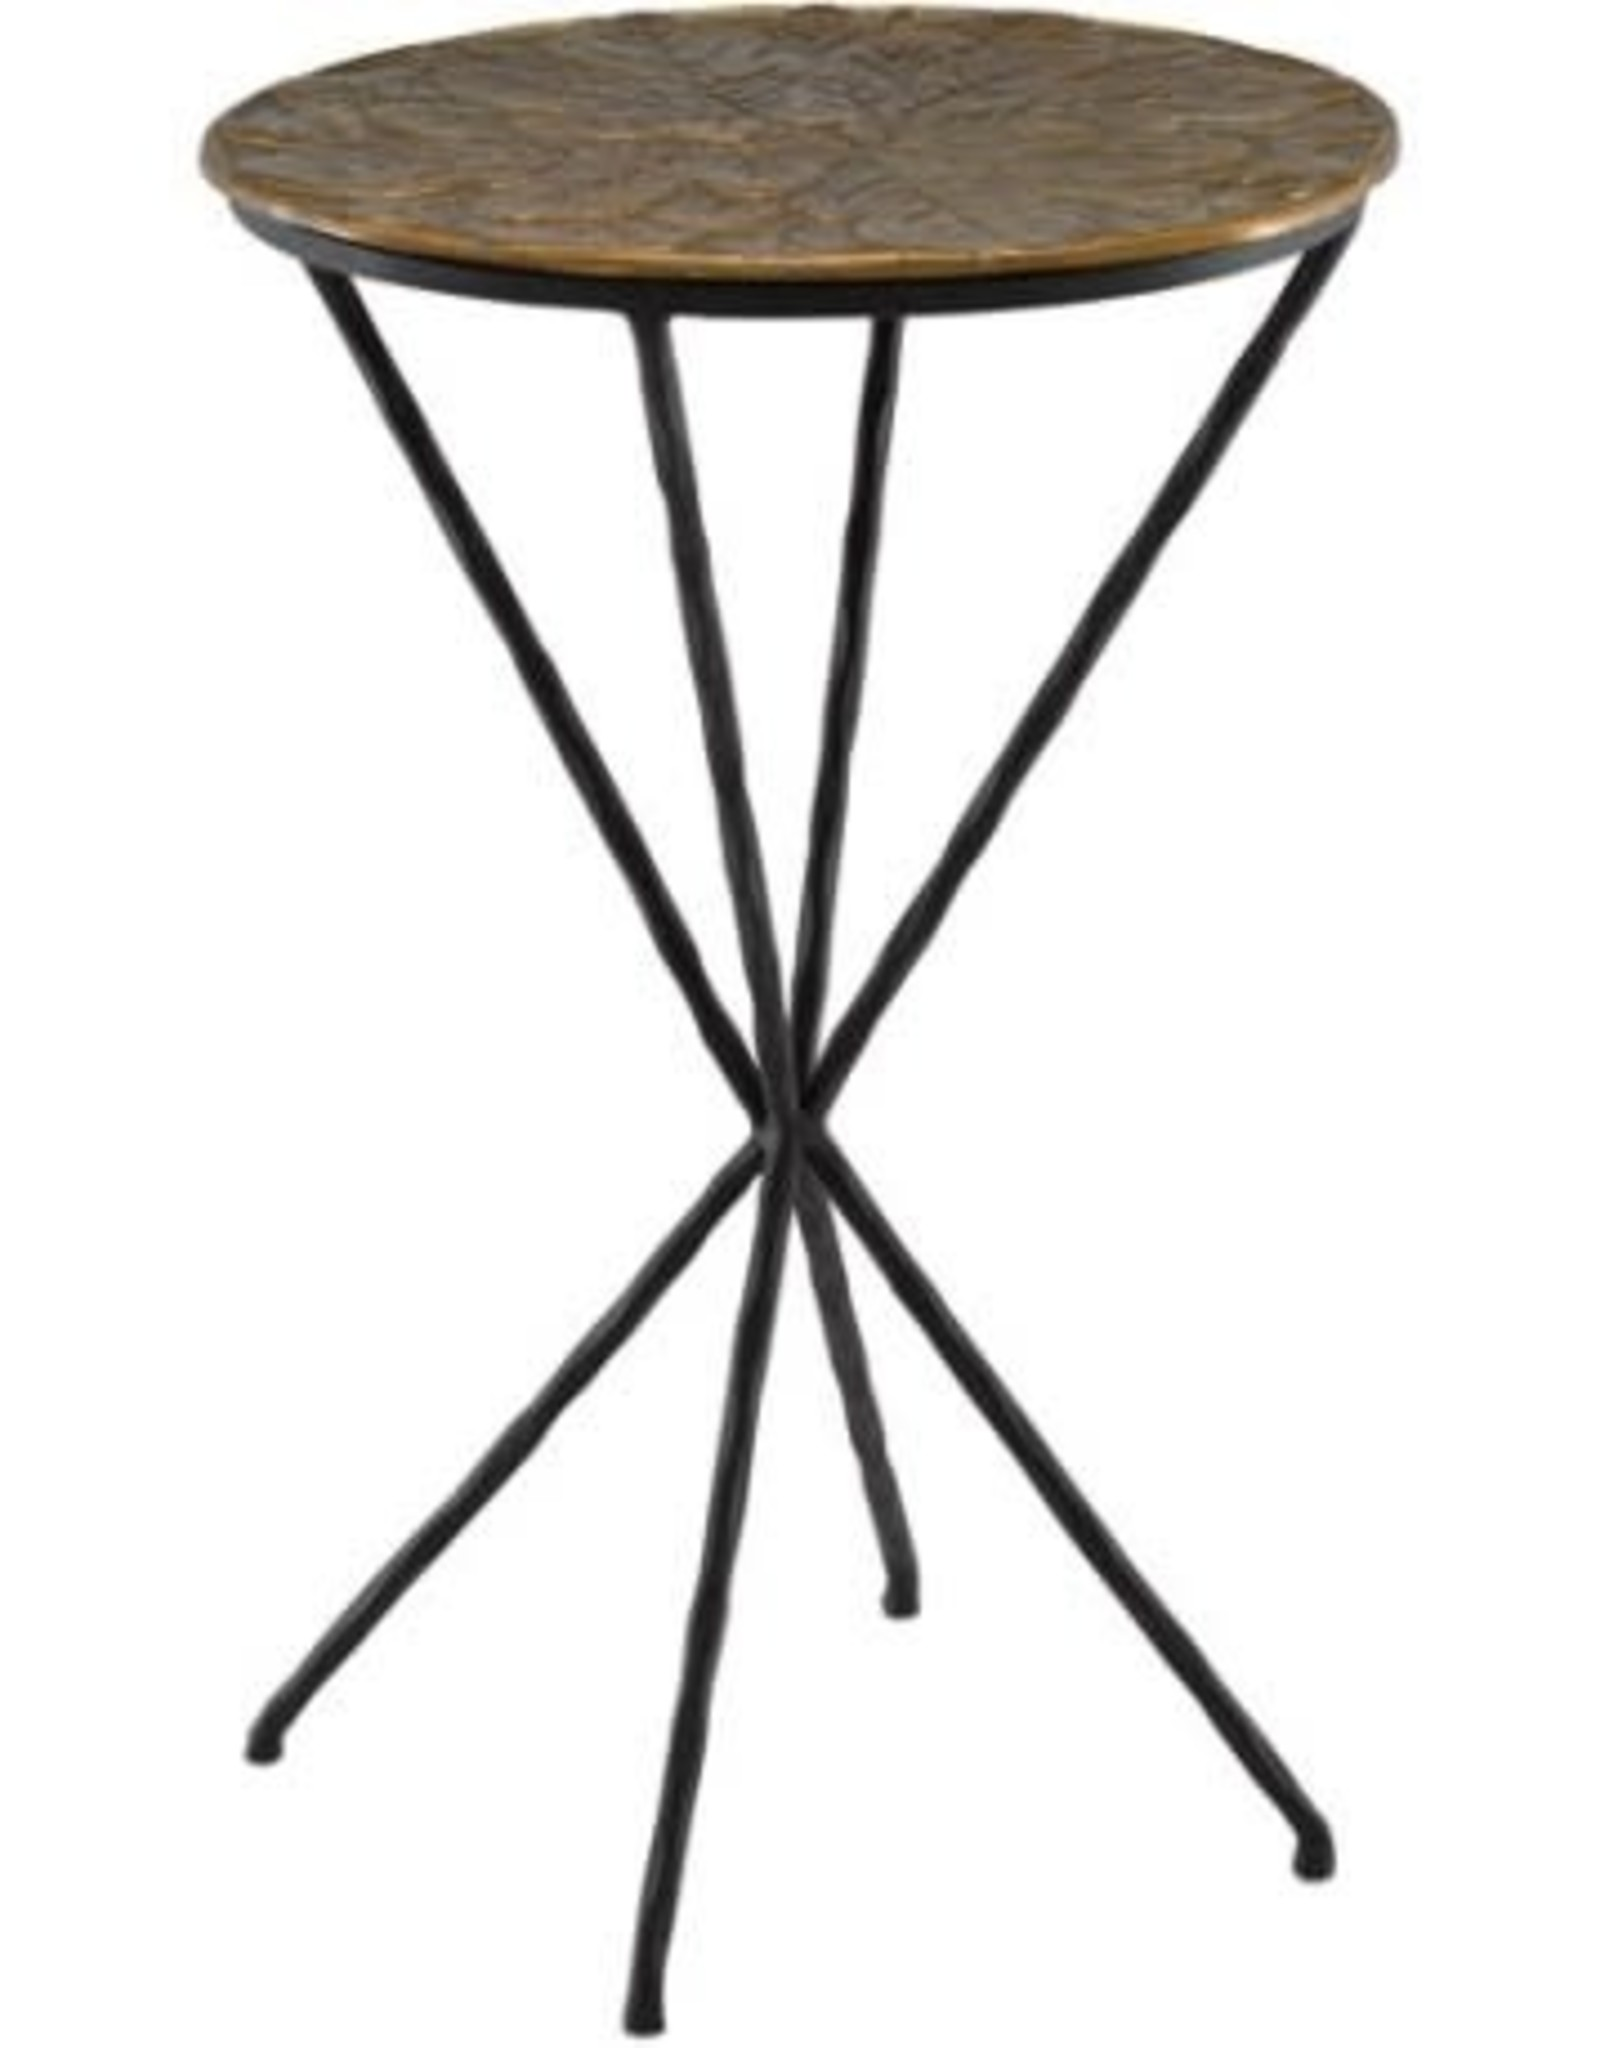 Currey & Company Figuier Drinks Table